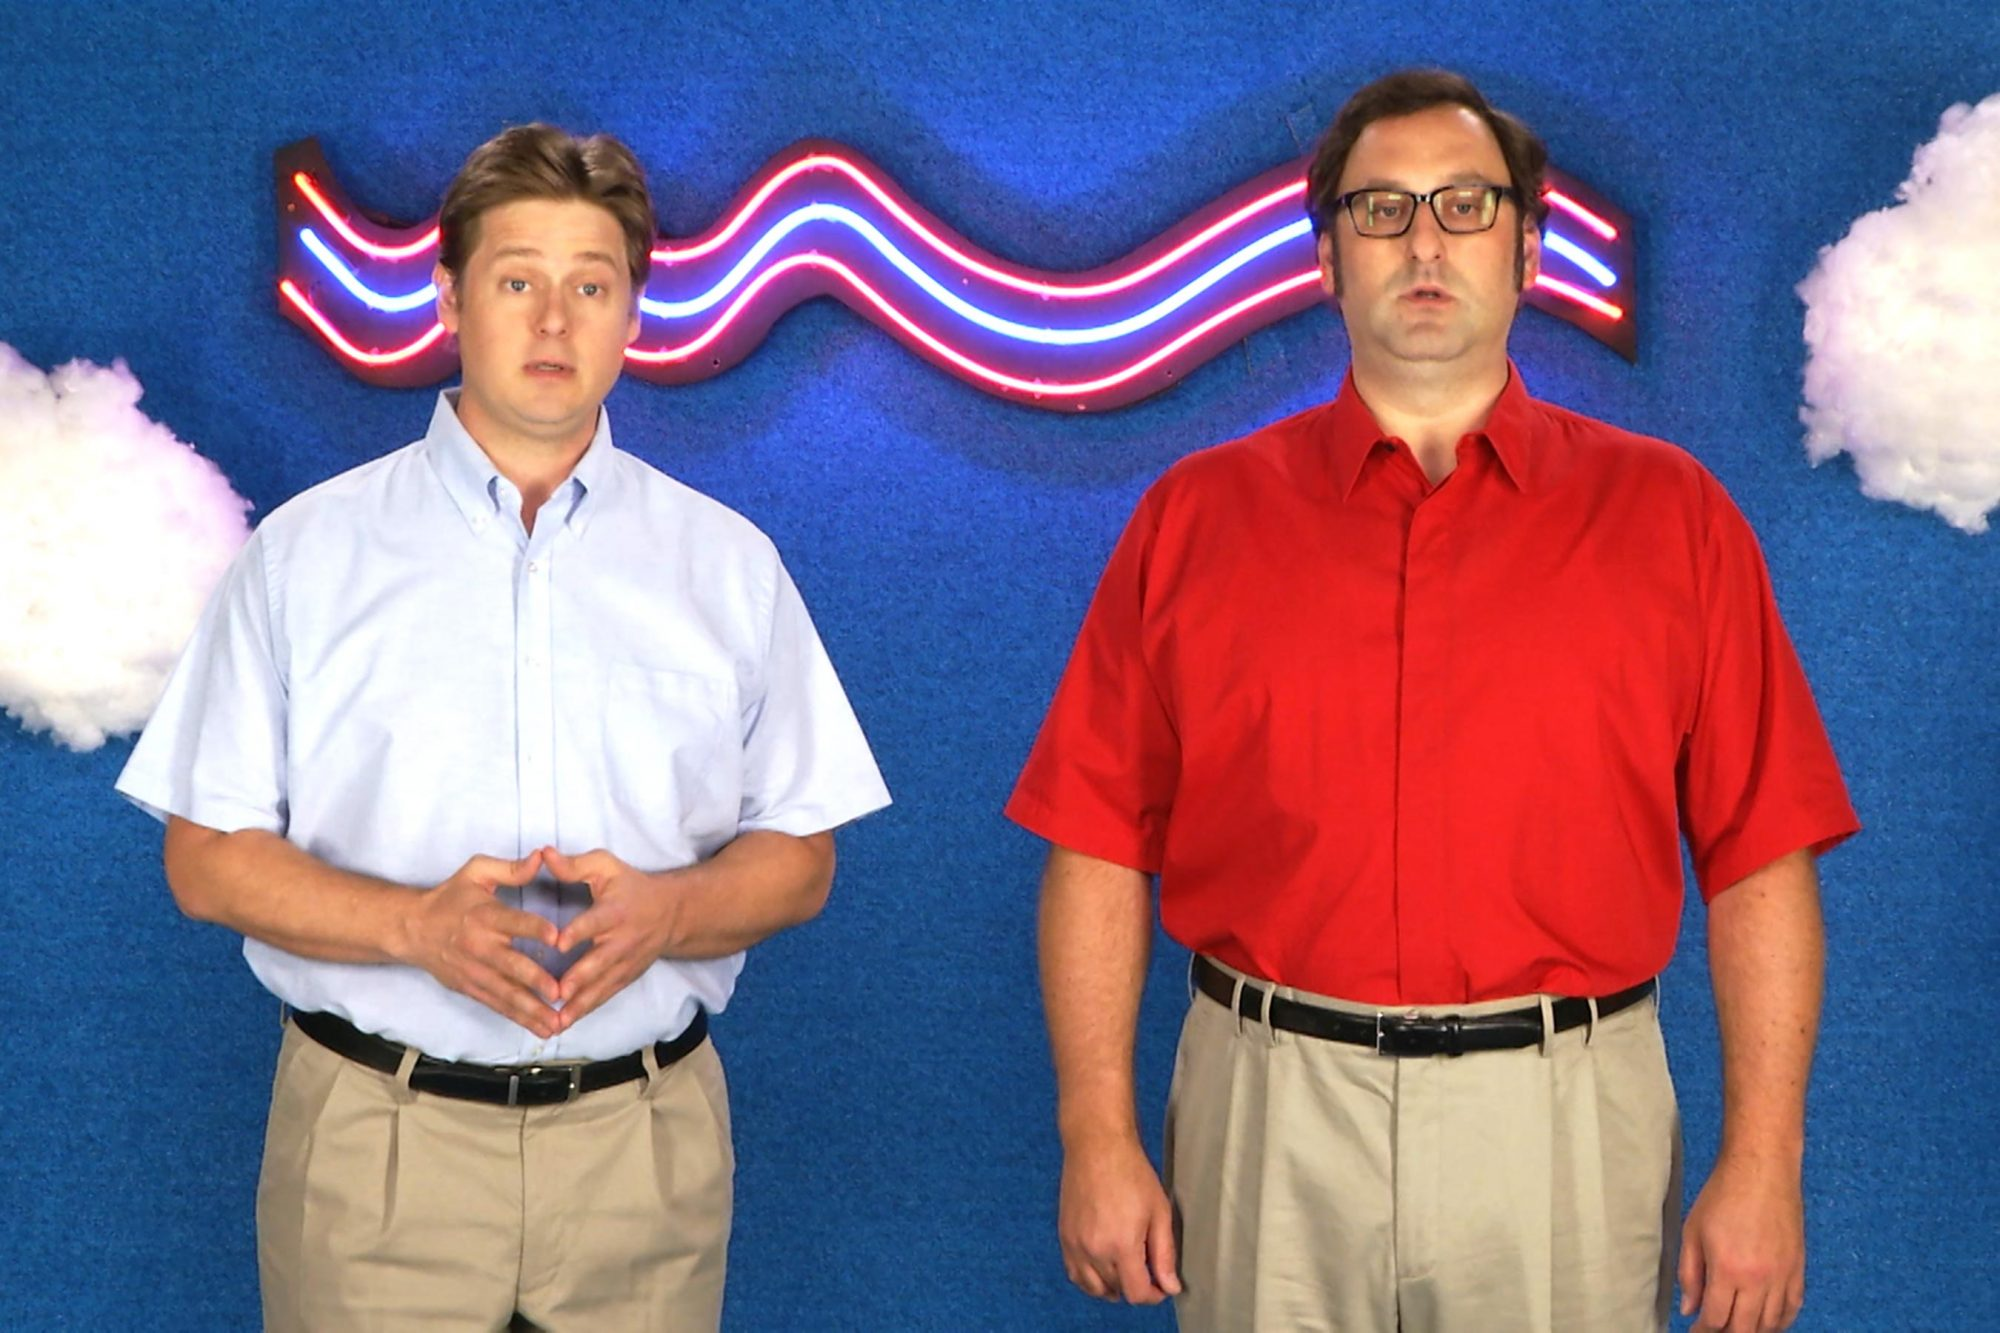 Tim and Eric Awesome Show, Great Job!CR: Adult Swim